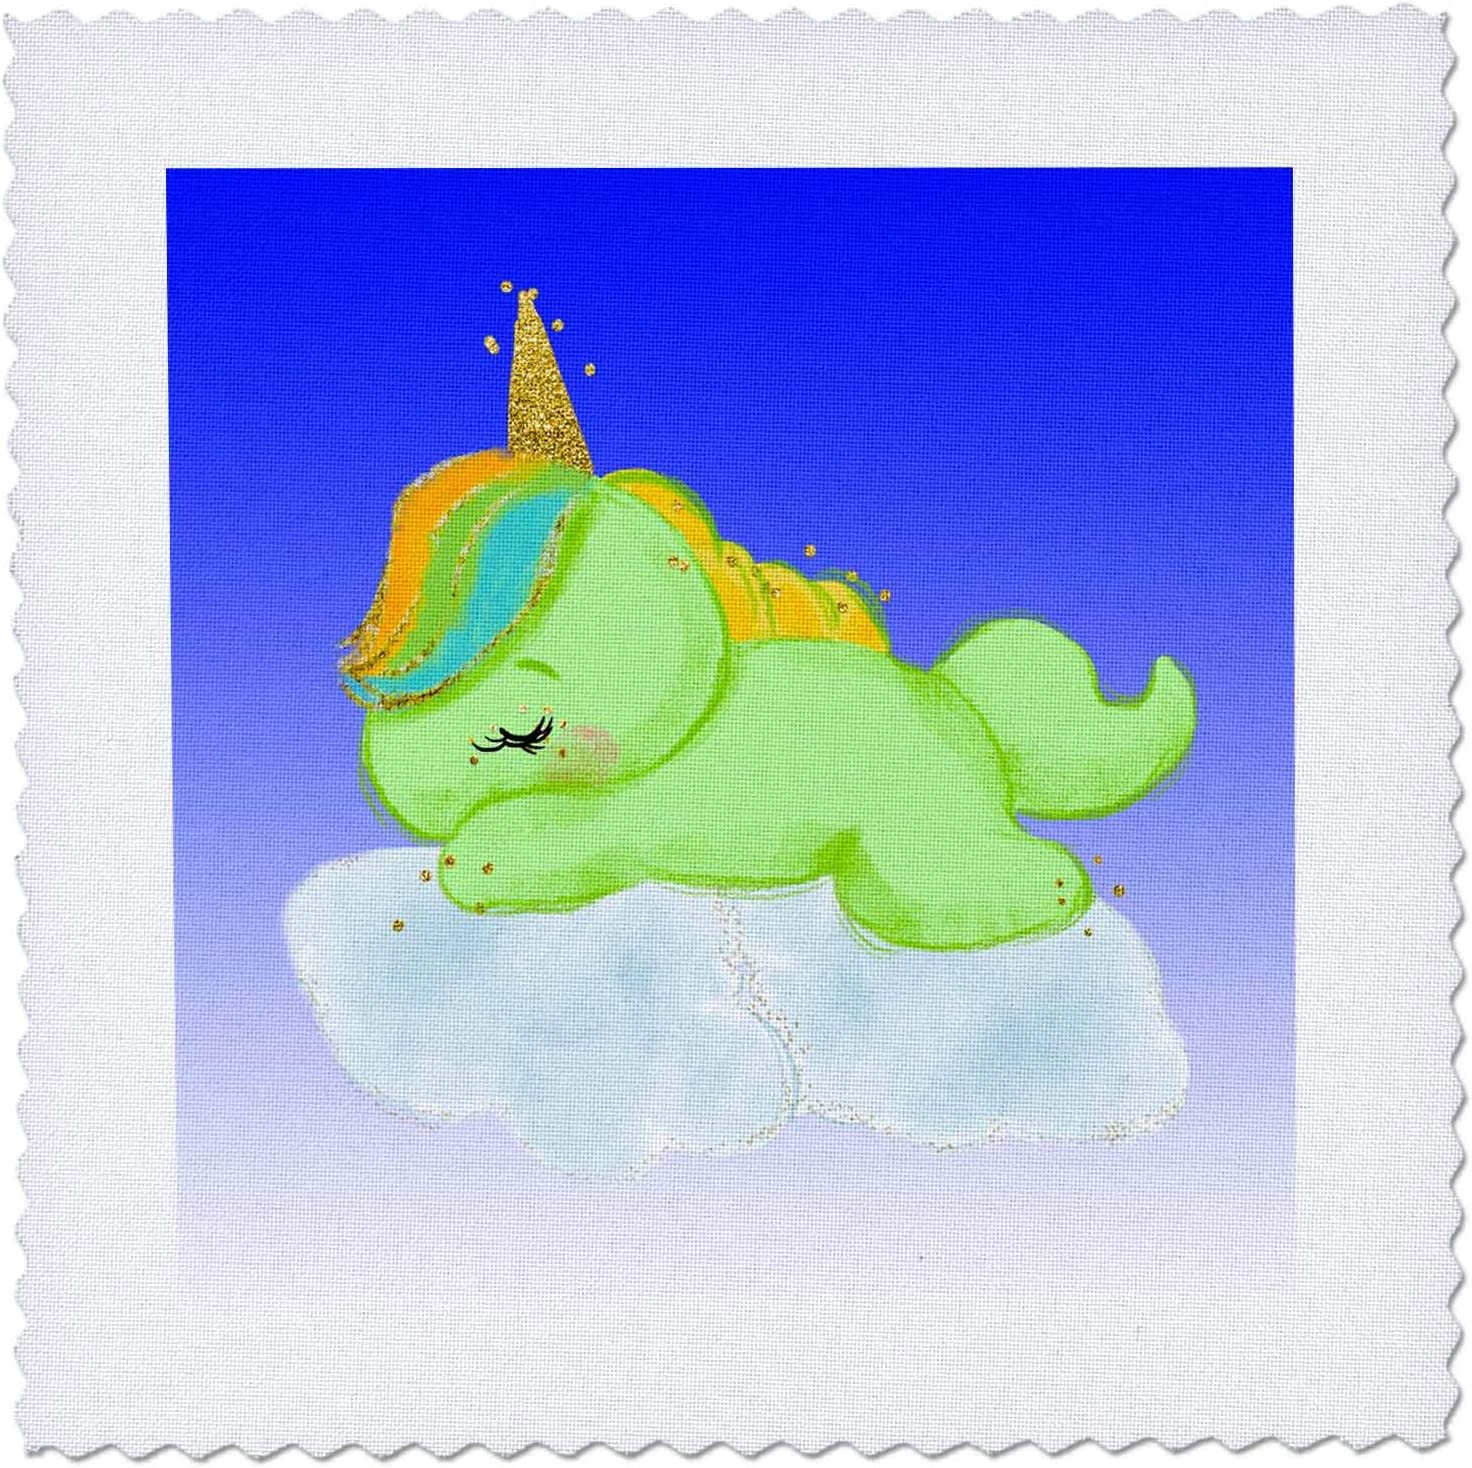 3dRose Green Unicorn Sleeping on Clouds with Sky It is very popular - Blue 3DRAMM Max 49% OFF